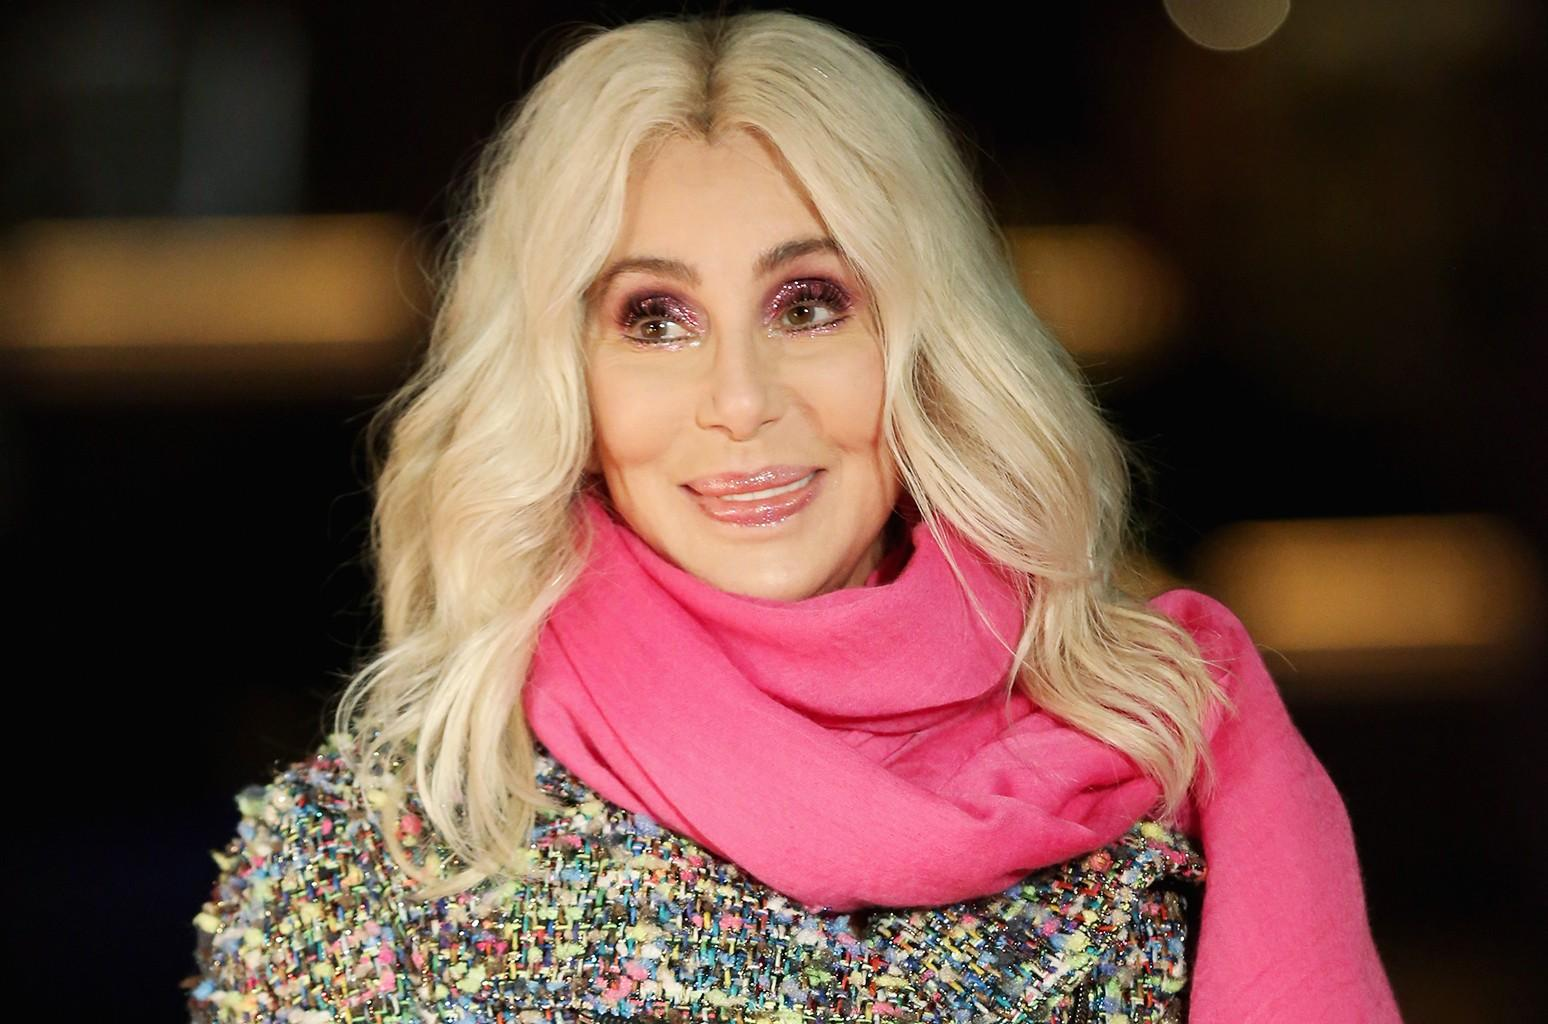 Cher Blames Trump For Asian Hate Crimes In The U.S. And Worries About Her Friends After Shootings Kill 8!